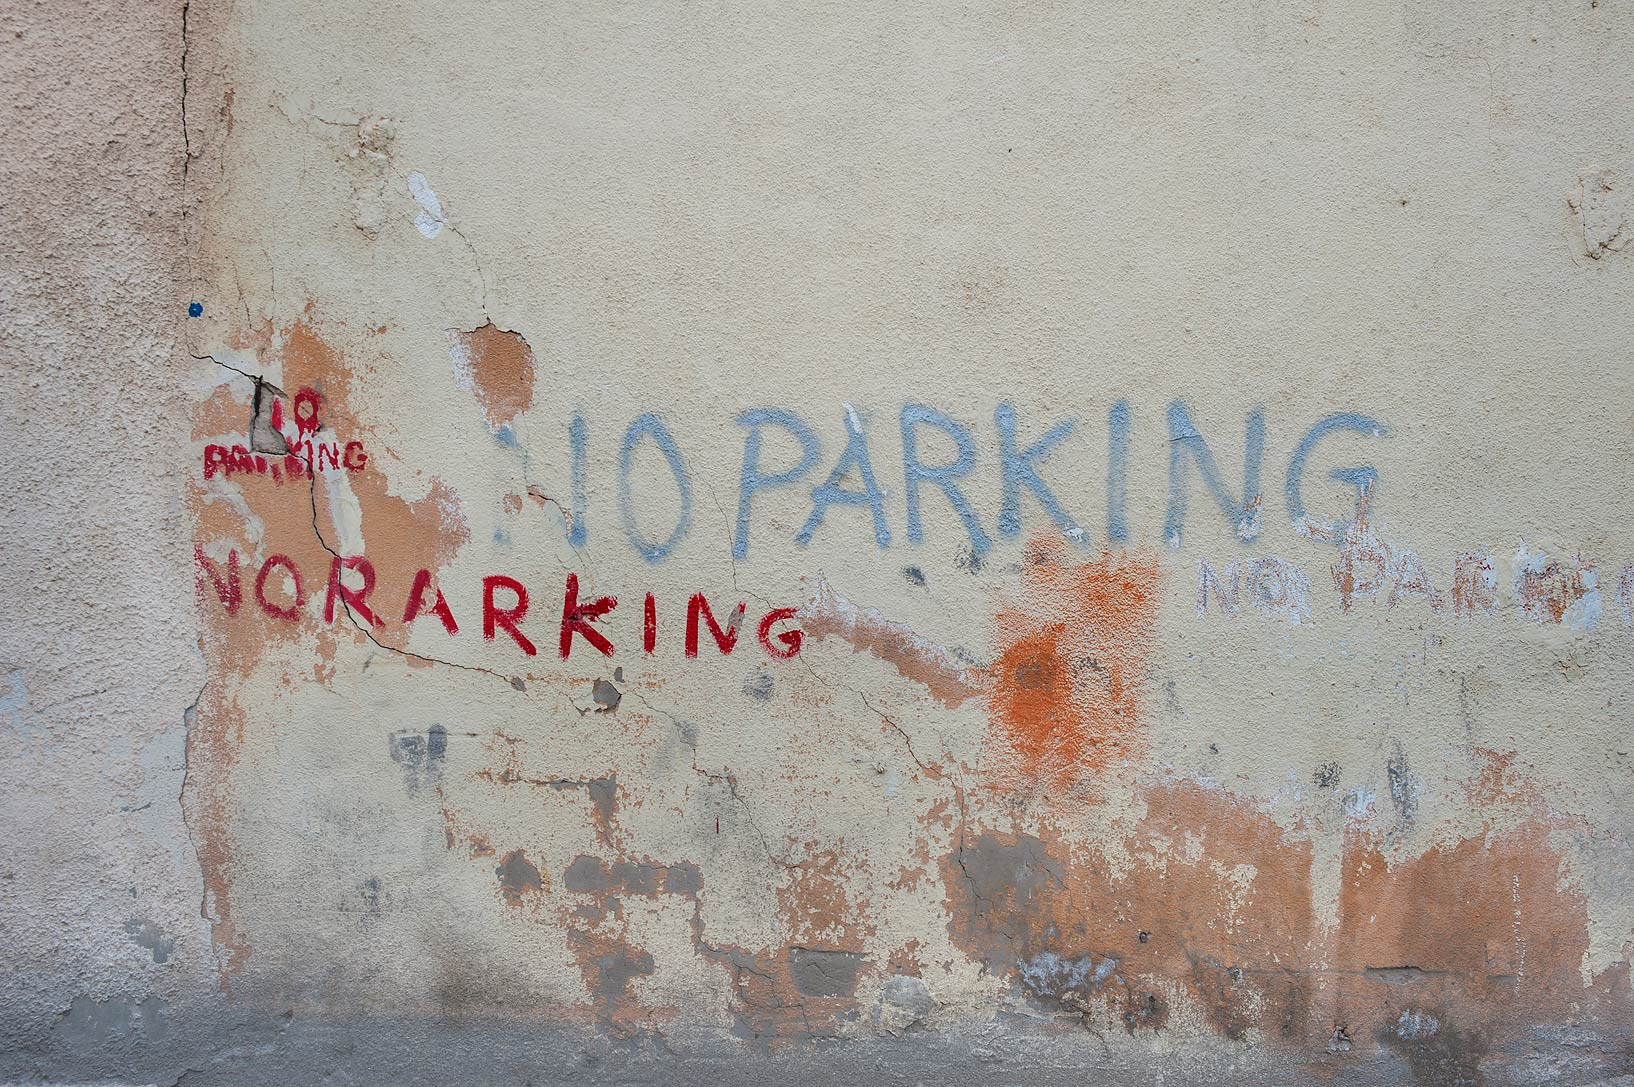 Parking signs written on a wall on Bishr Bin Al Baraa St. in Najma area. Doha, Qatar